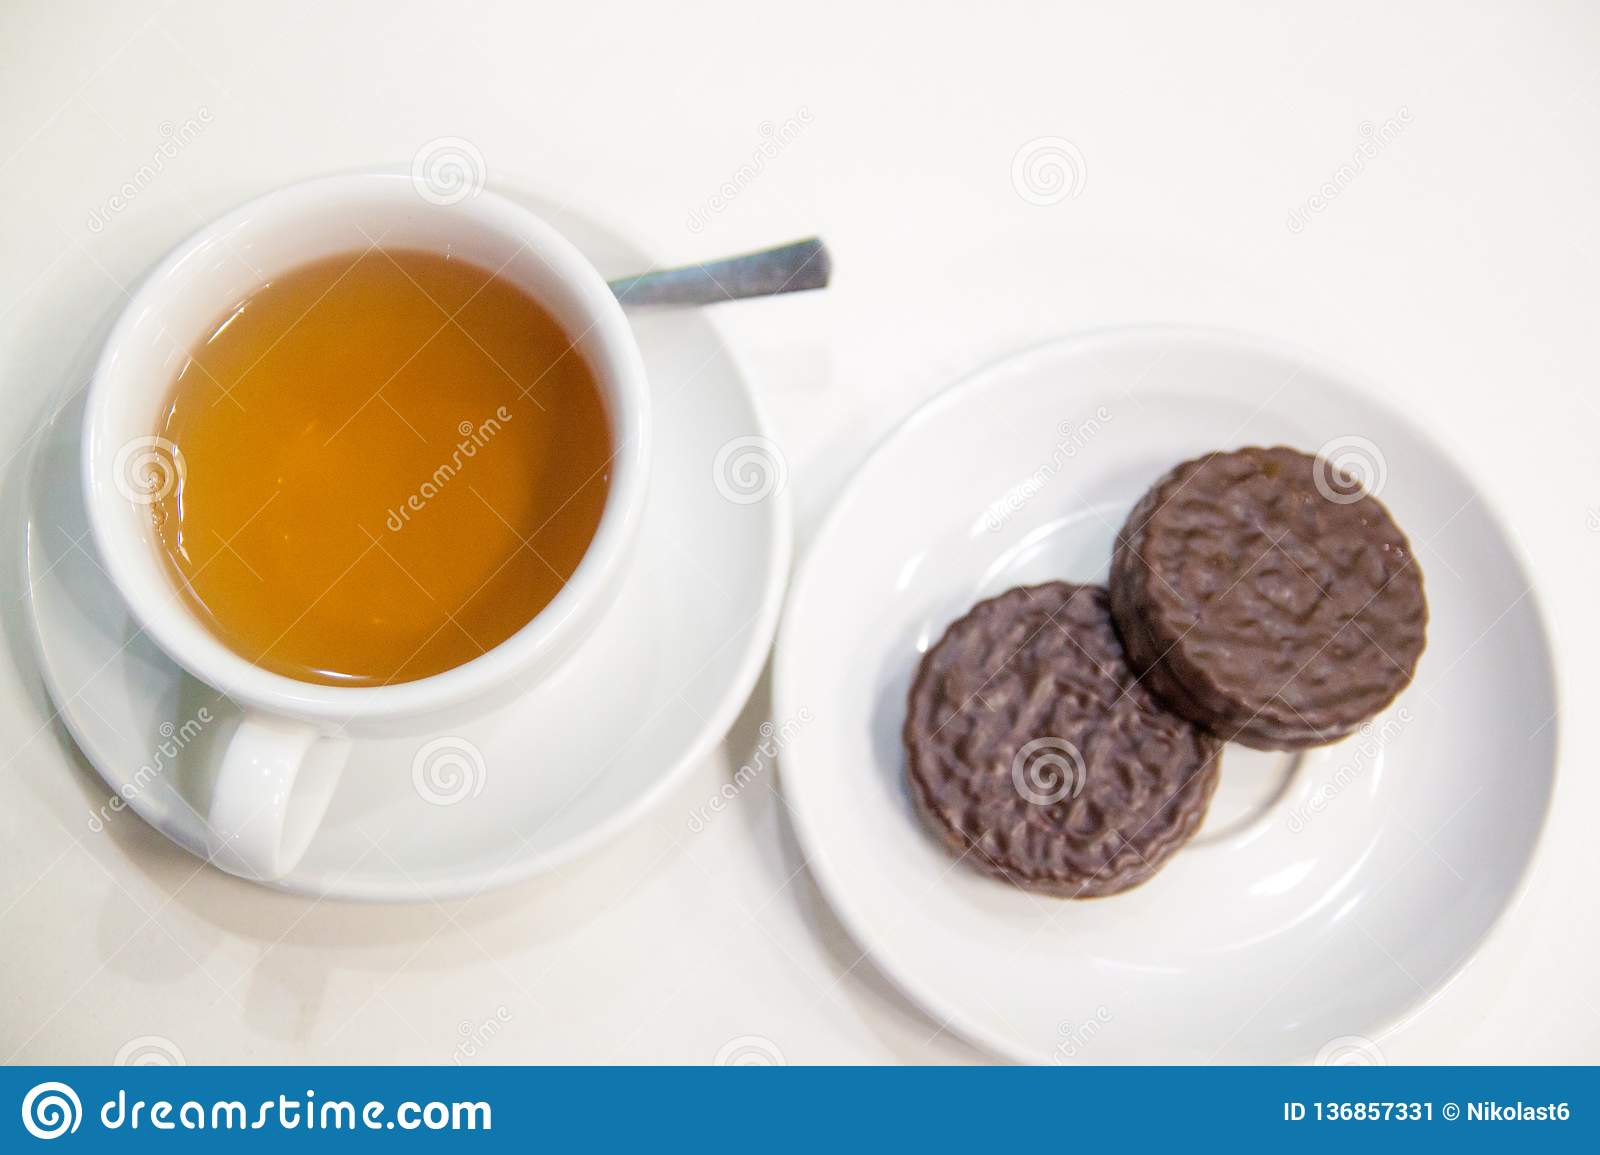 A cup of tea and cookies on the table in white background